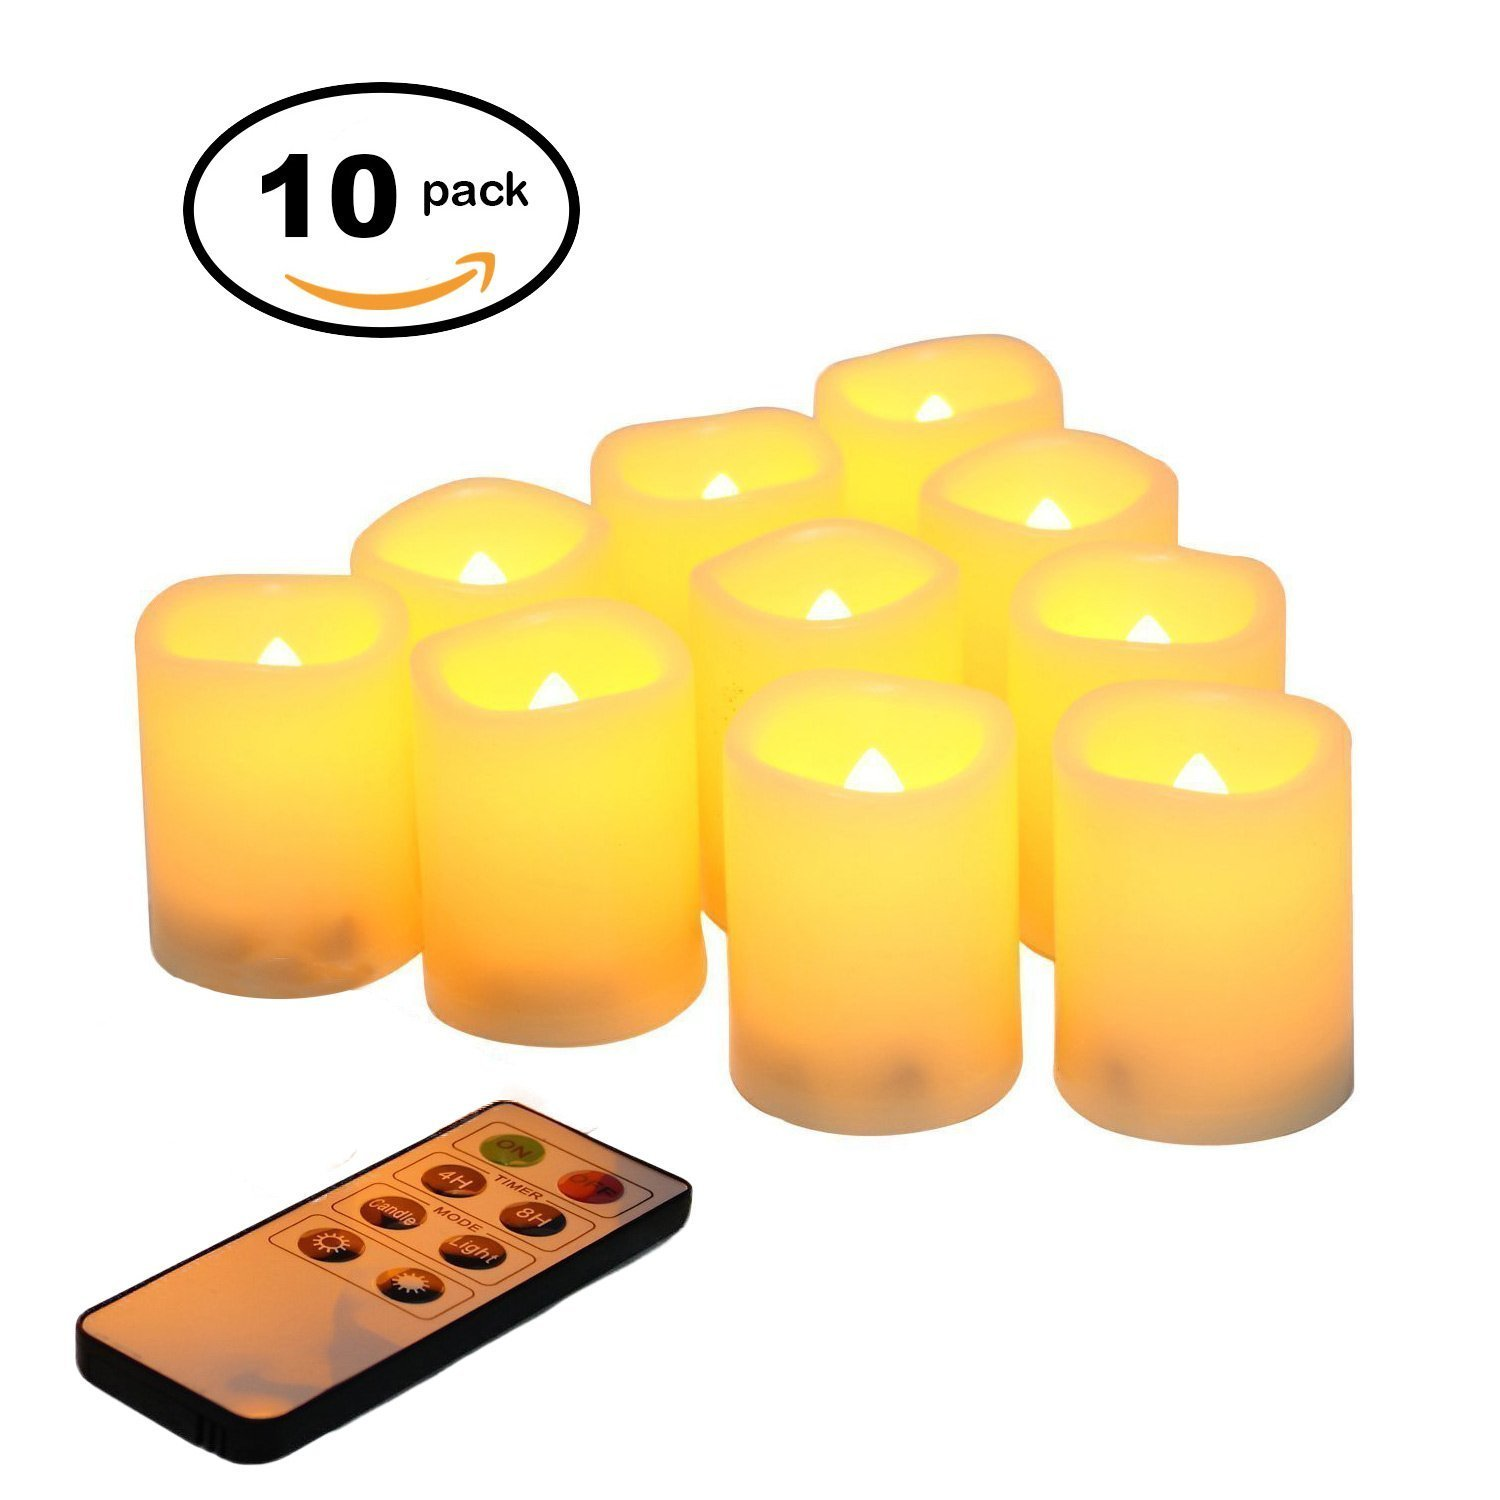 WIFUME Flameless Realistic Candles LED Light Battery Operated Flikering Flameless Votive Candles, LED Votive Candles with Remote, Set of 10, D1.5 x H2 Warm Yellow